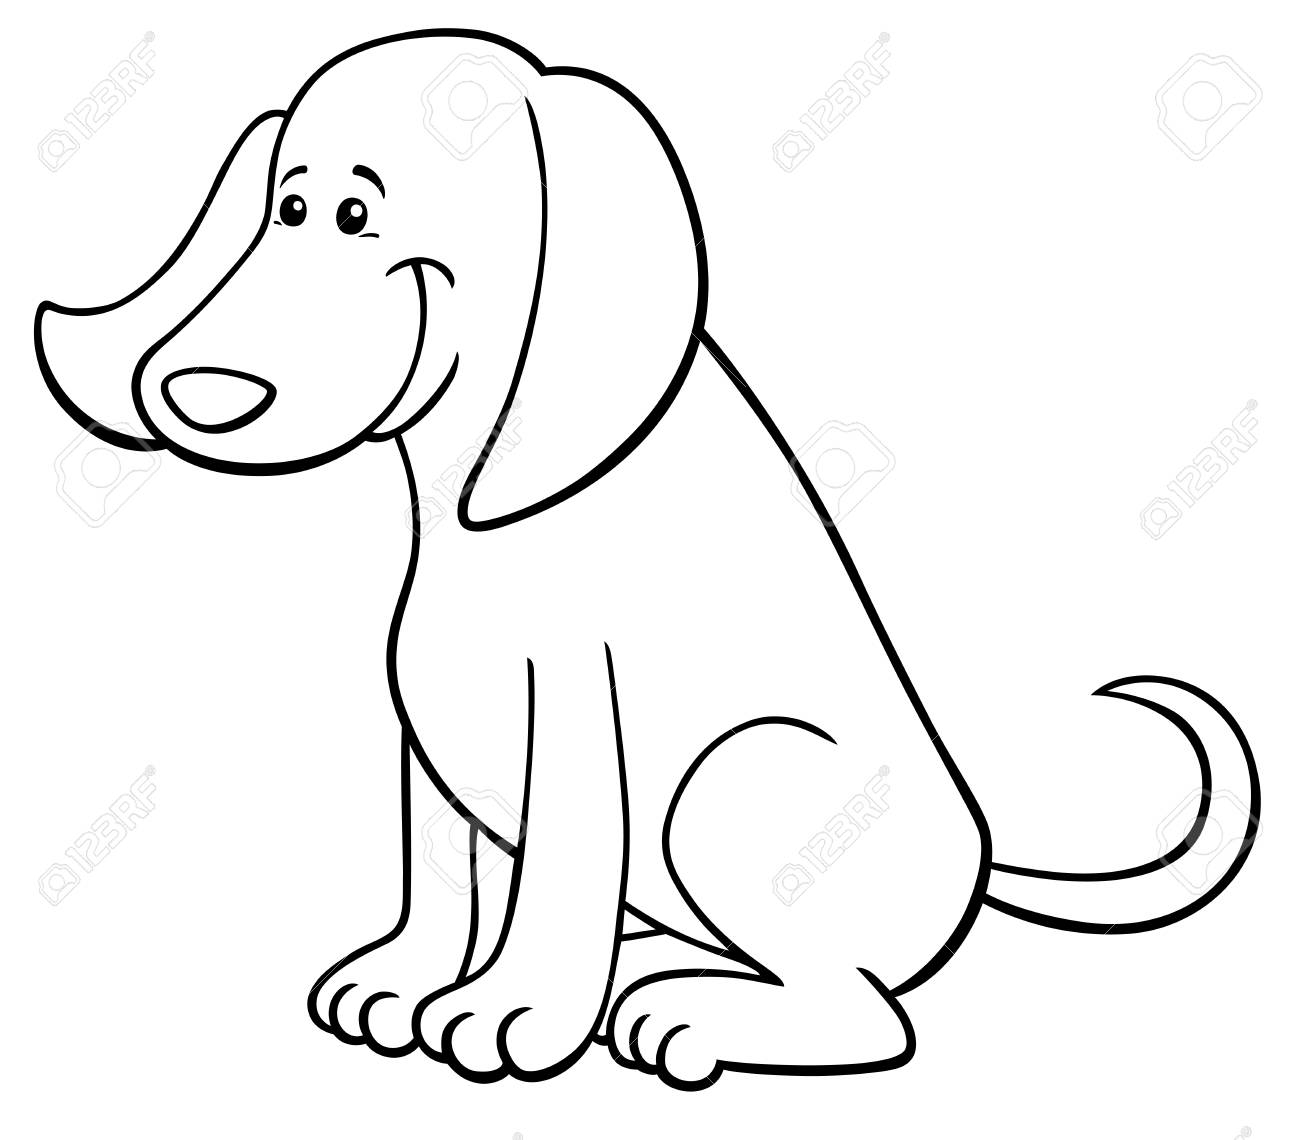 Black And White Cartoon Illustration Of Cute Happy Dog Animal Royalty Free Cliparts Vectors And Stock Illustration Image 94527691